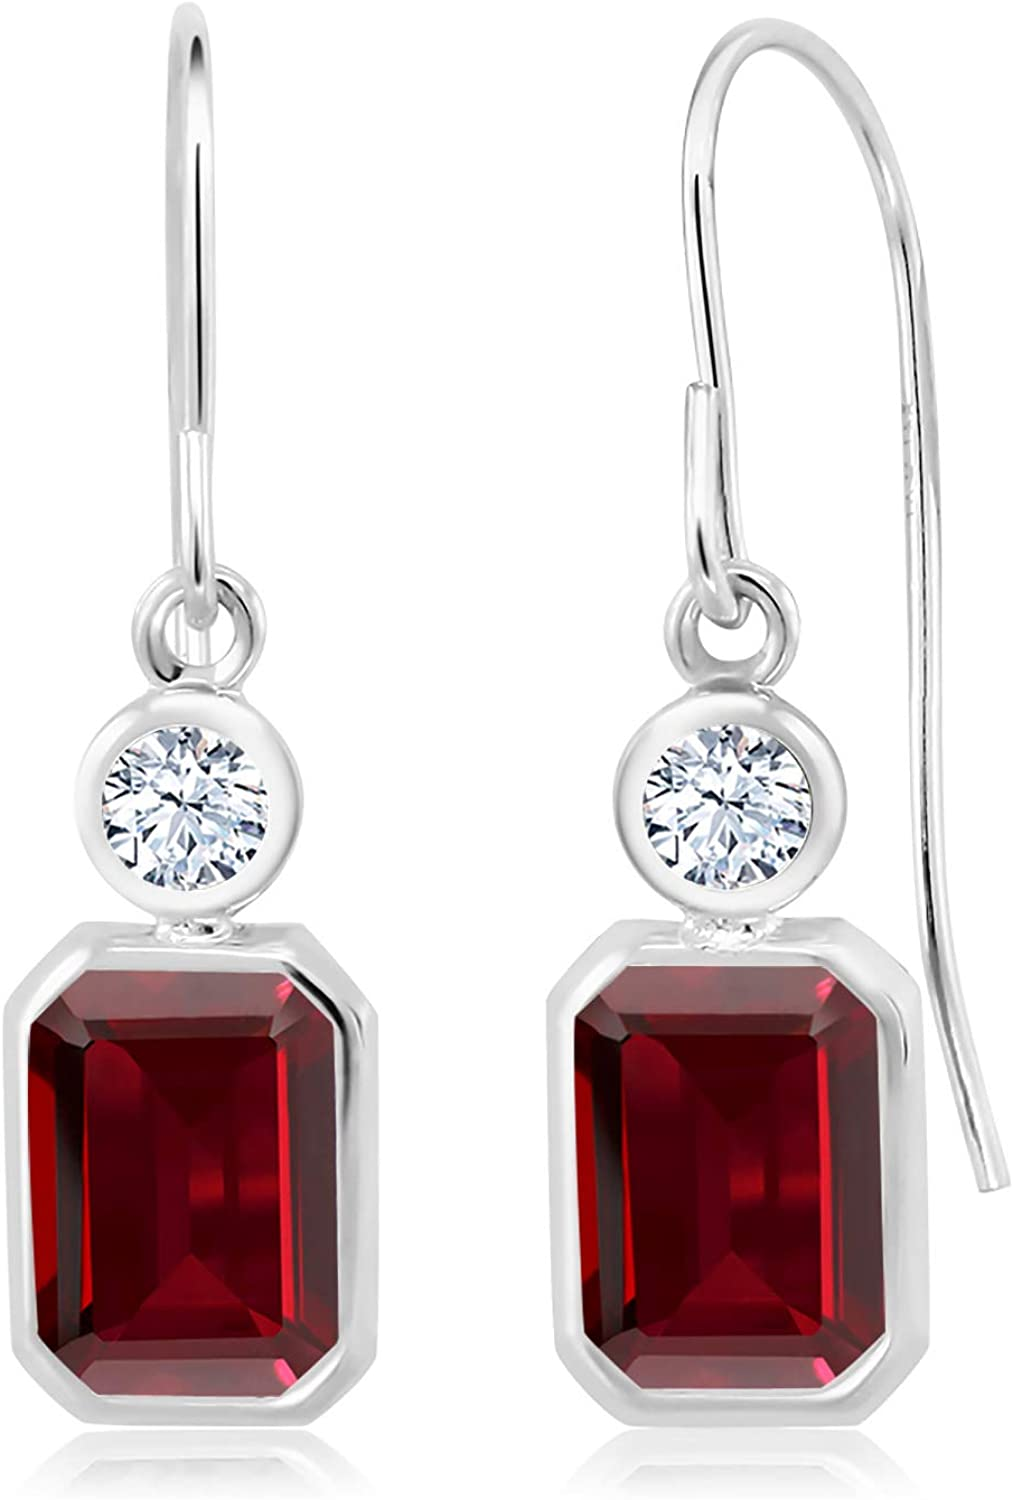 Gem Stone King 3.86 Ct 55% Challenge the lowest price of Japan OFF Emerald Cut Red Garnet White Created Sapp